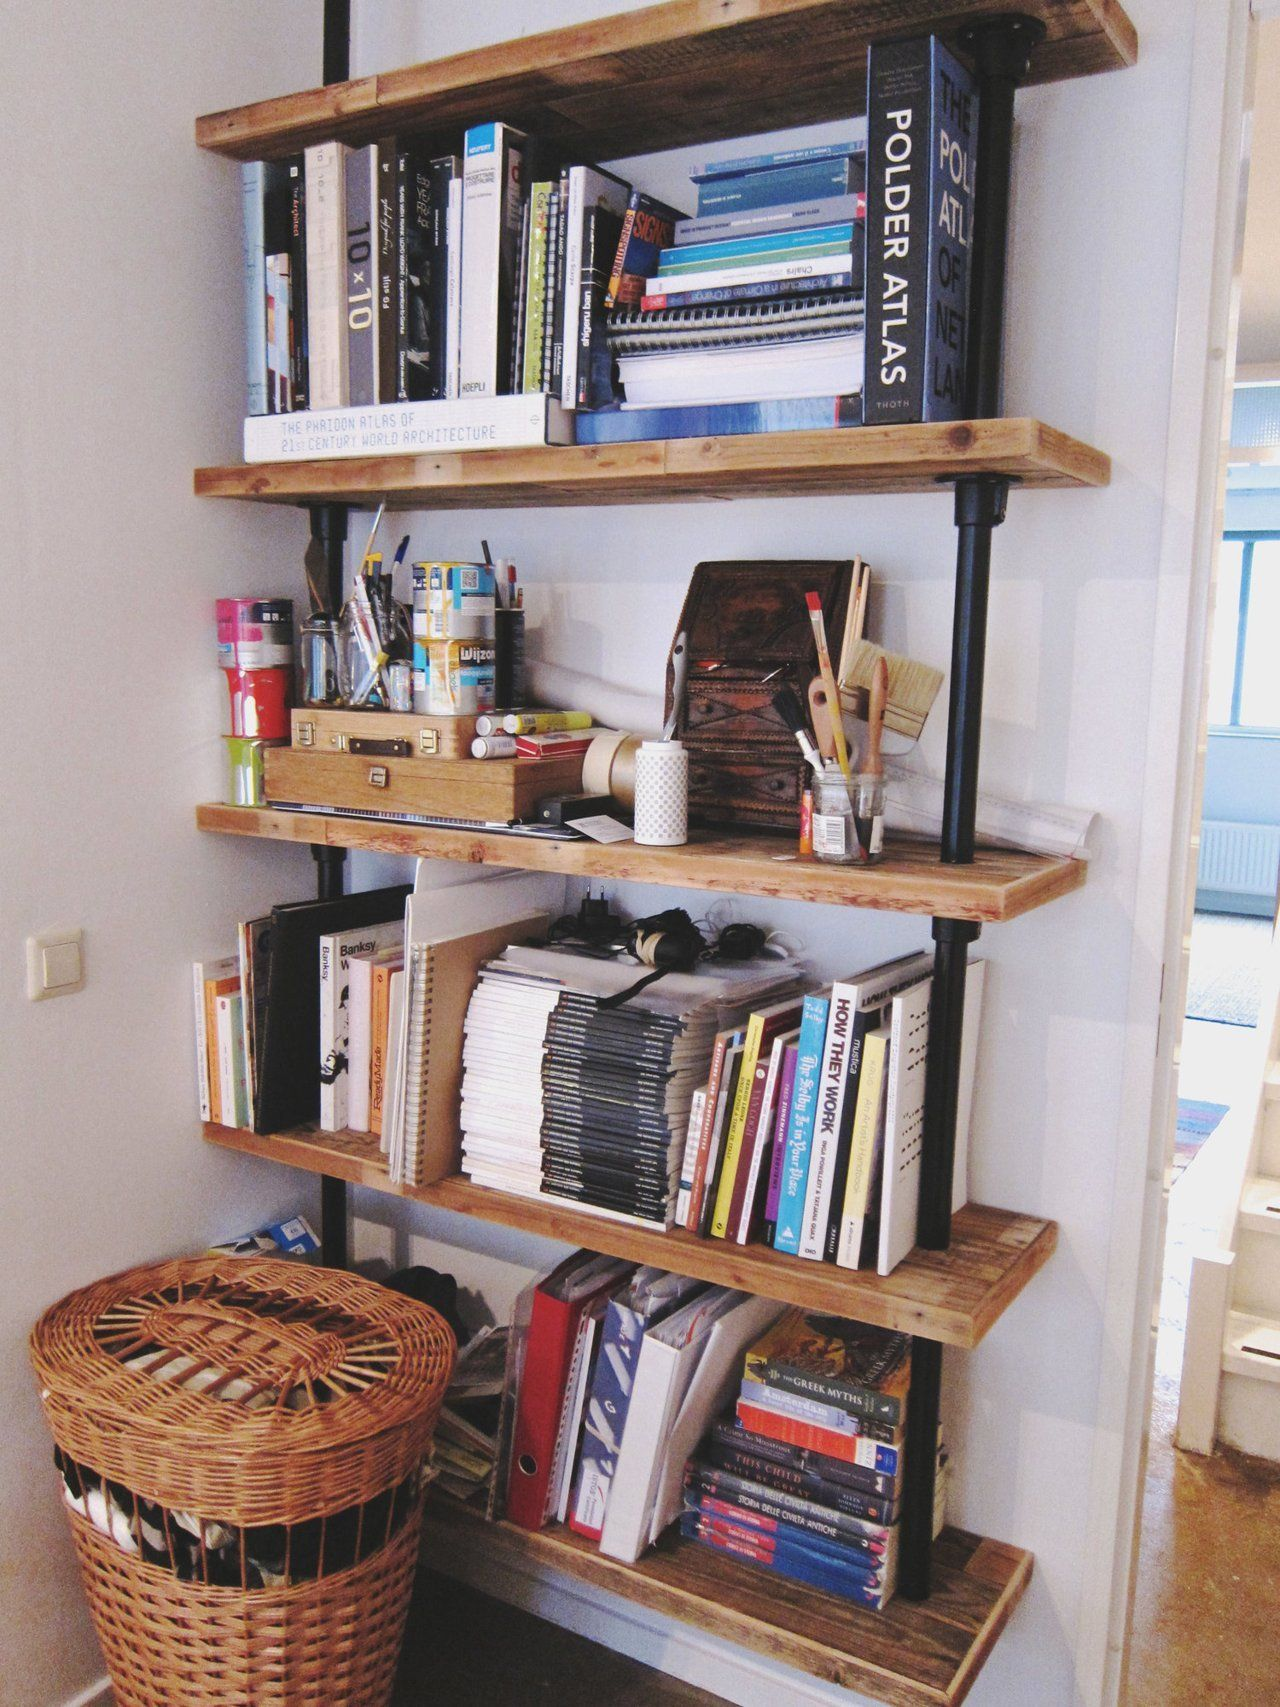 Hanging Shelves Elena Judd S Cozy Amsterdam Apartment Therapy